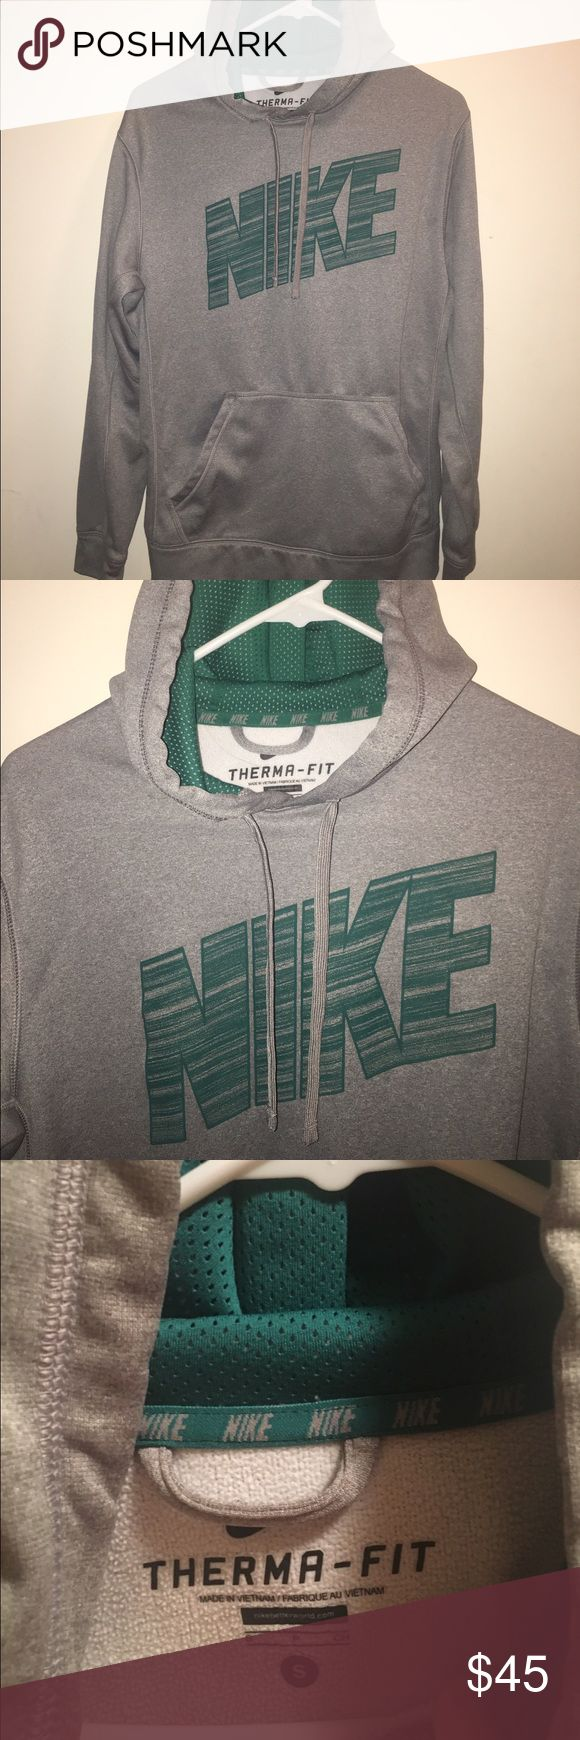 mens nike therma-fit hoodie mens grey nike therma-fit hoodie - green nike lettering across front - mesh inside hood - 100% polyester - although hoodie is mens, im clearly not a male so it would suit a girl as well Nike Tops Sweatshirts & Hoodies